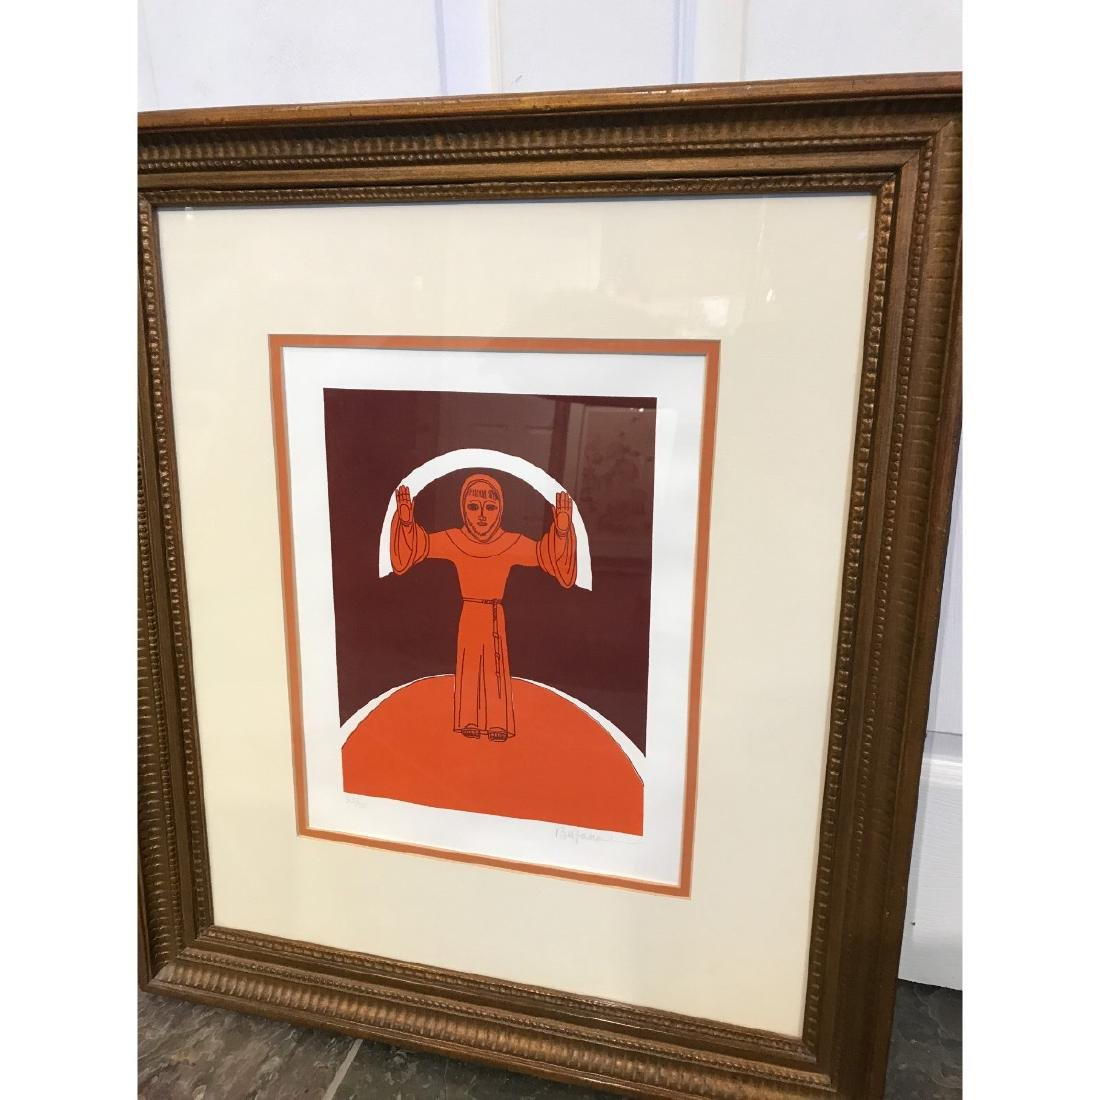 Limited Edition Print of a Monk by Bu Fano, Randolph - 8